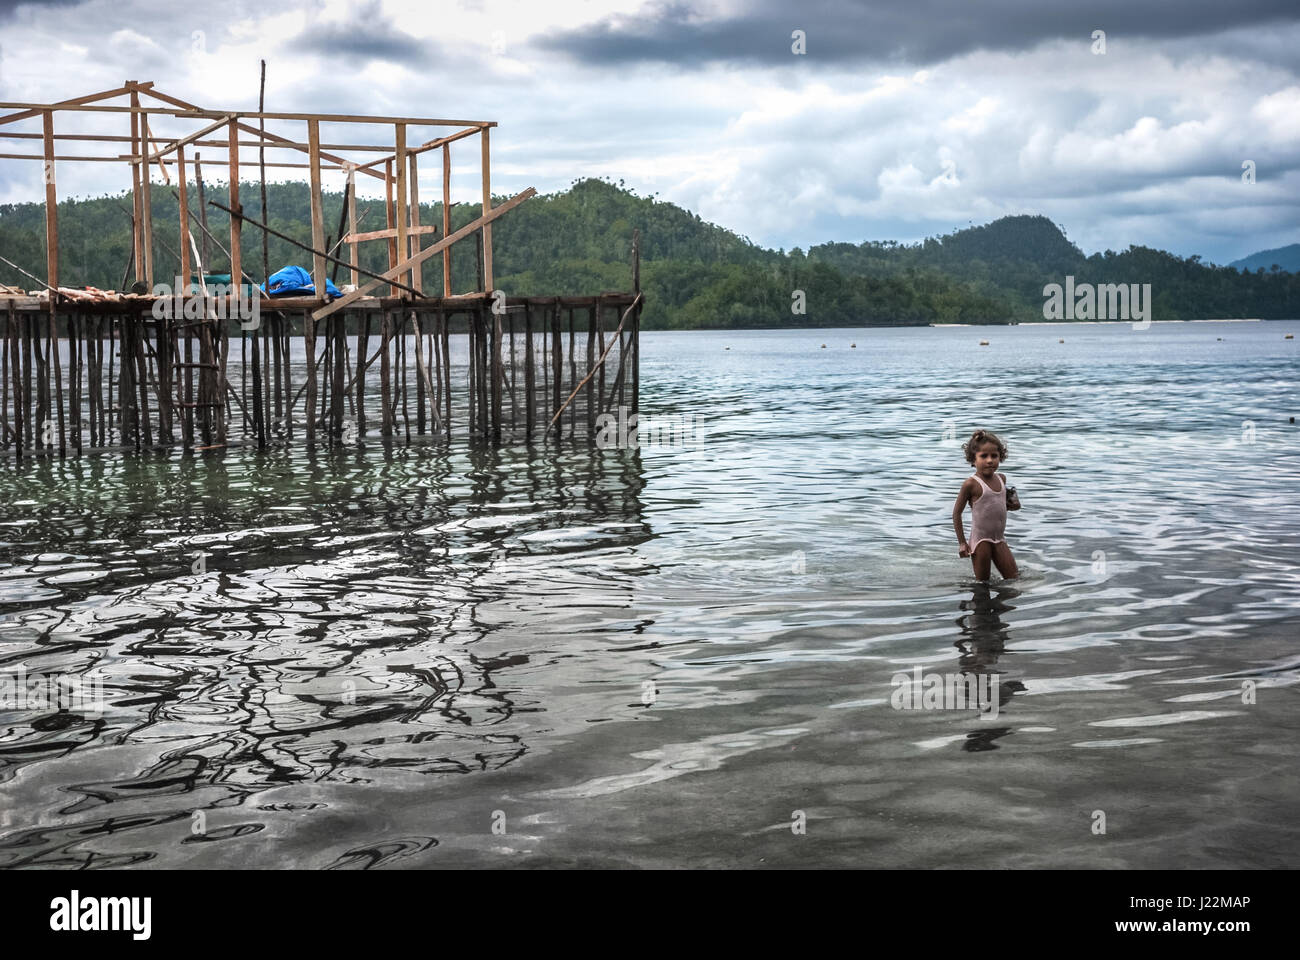 A little girl playing in the coastal water of Friwen Island in Raja Ampat Archipelago, West Papua, Indonesia. © - Stock Image